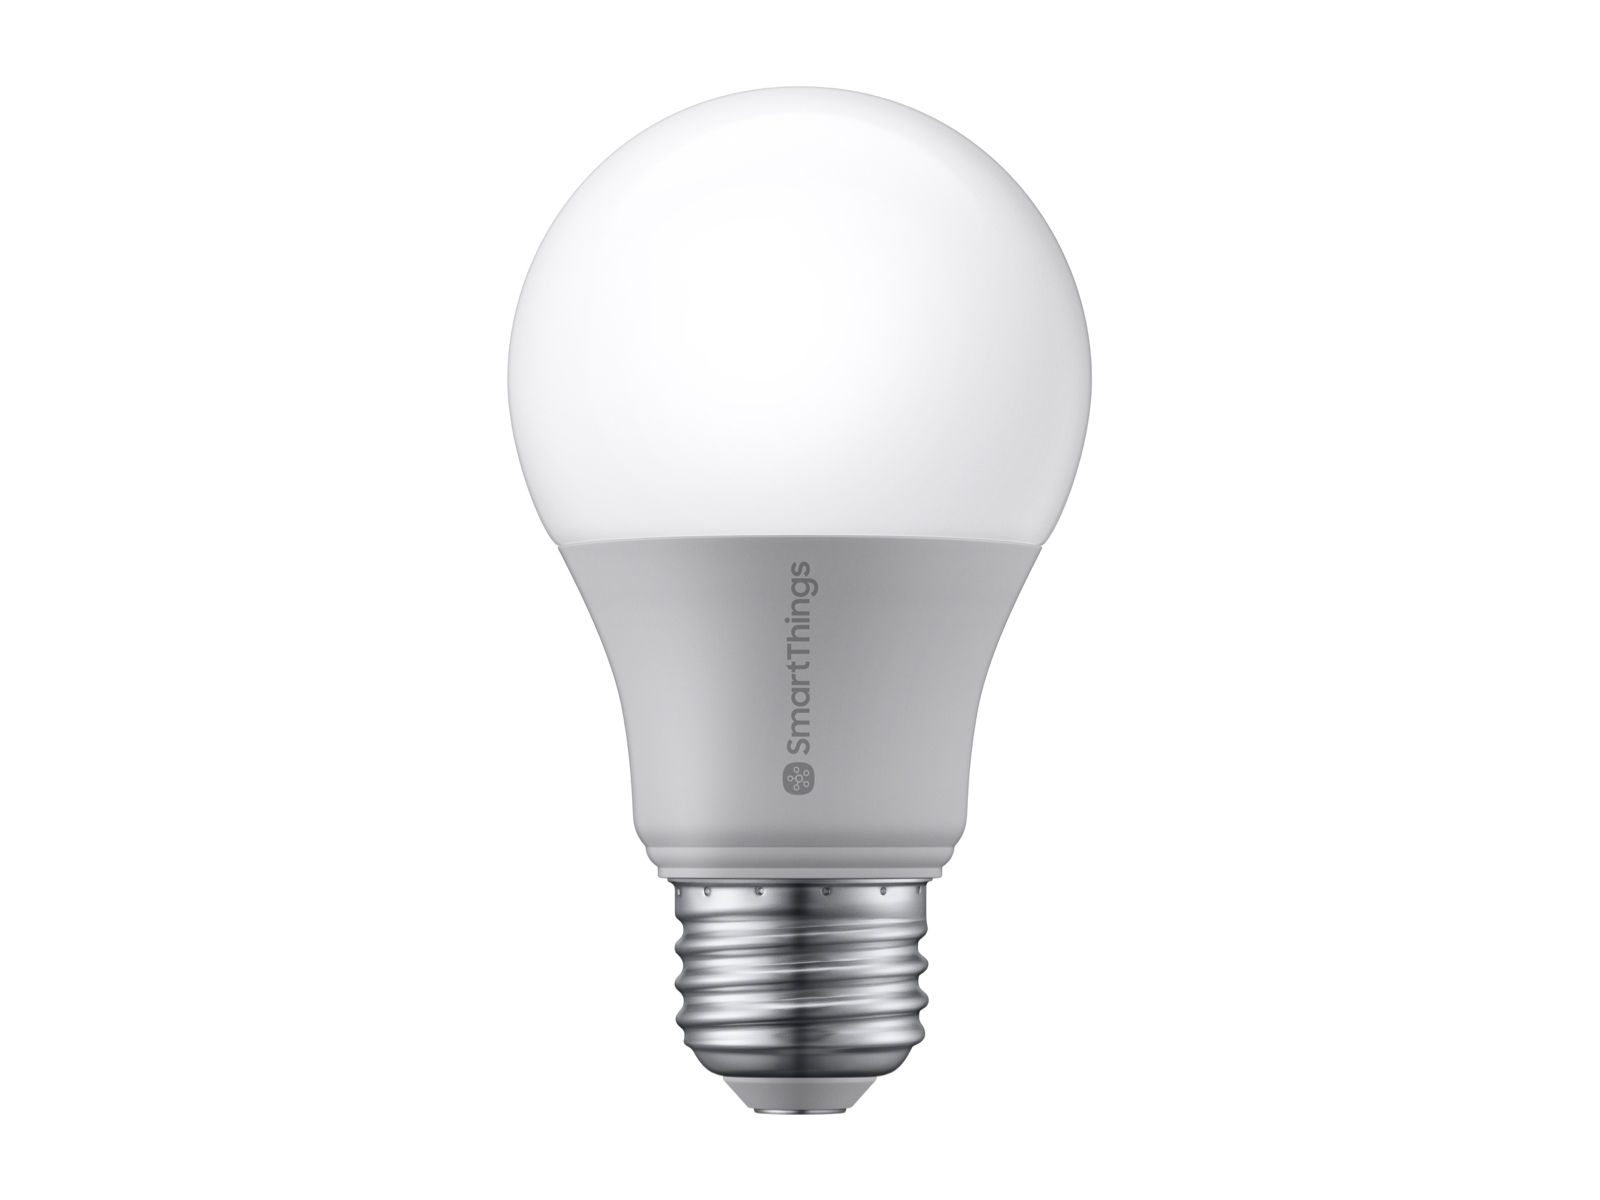 SmartThings Smart Bulb